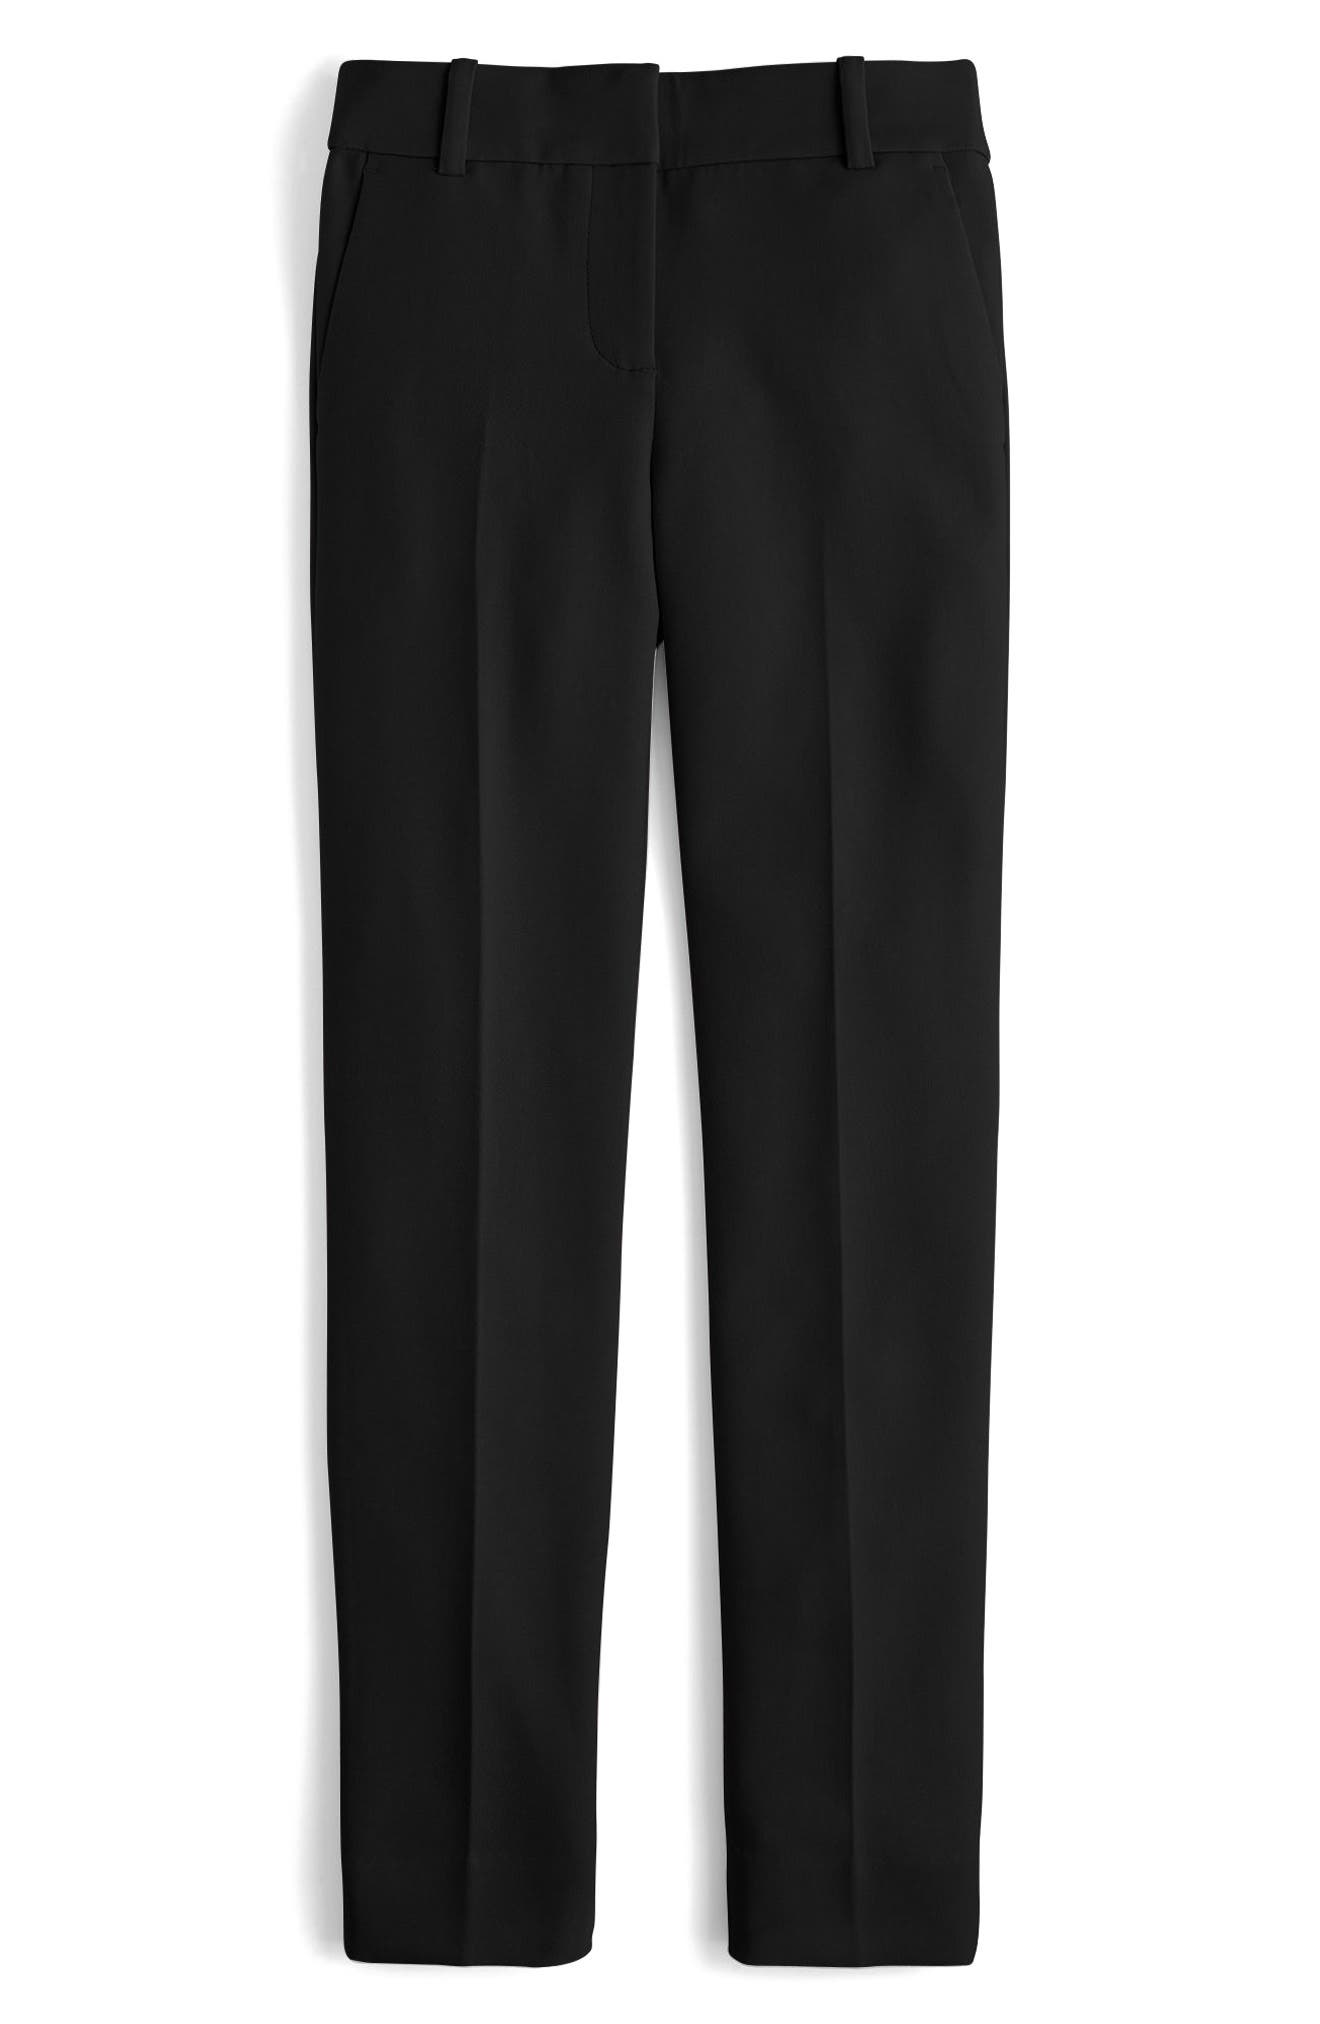 Cameron Four Season Crop Pants,                             Alternate thumbnail 2, color,                             001